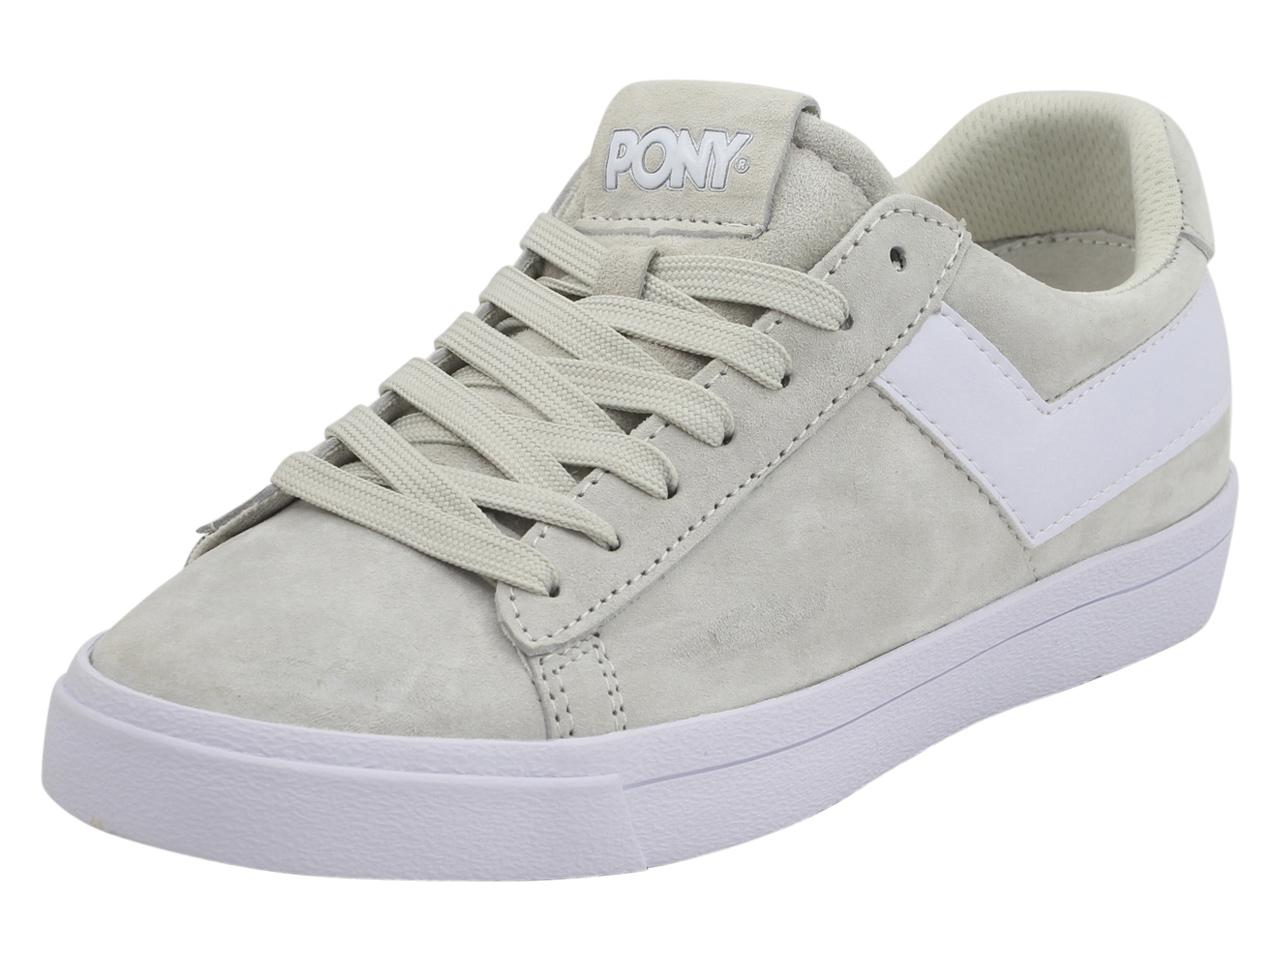 Image of Pony Women's Top Star Lo Core Suede Sneakers Shoes - Beige - 7.5 B(M) US